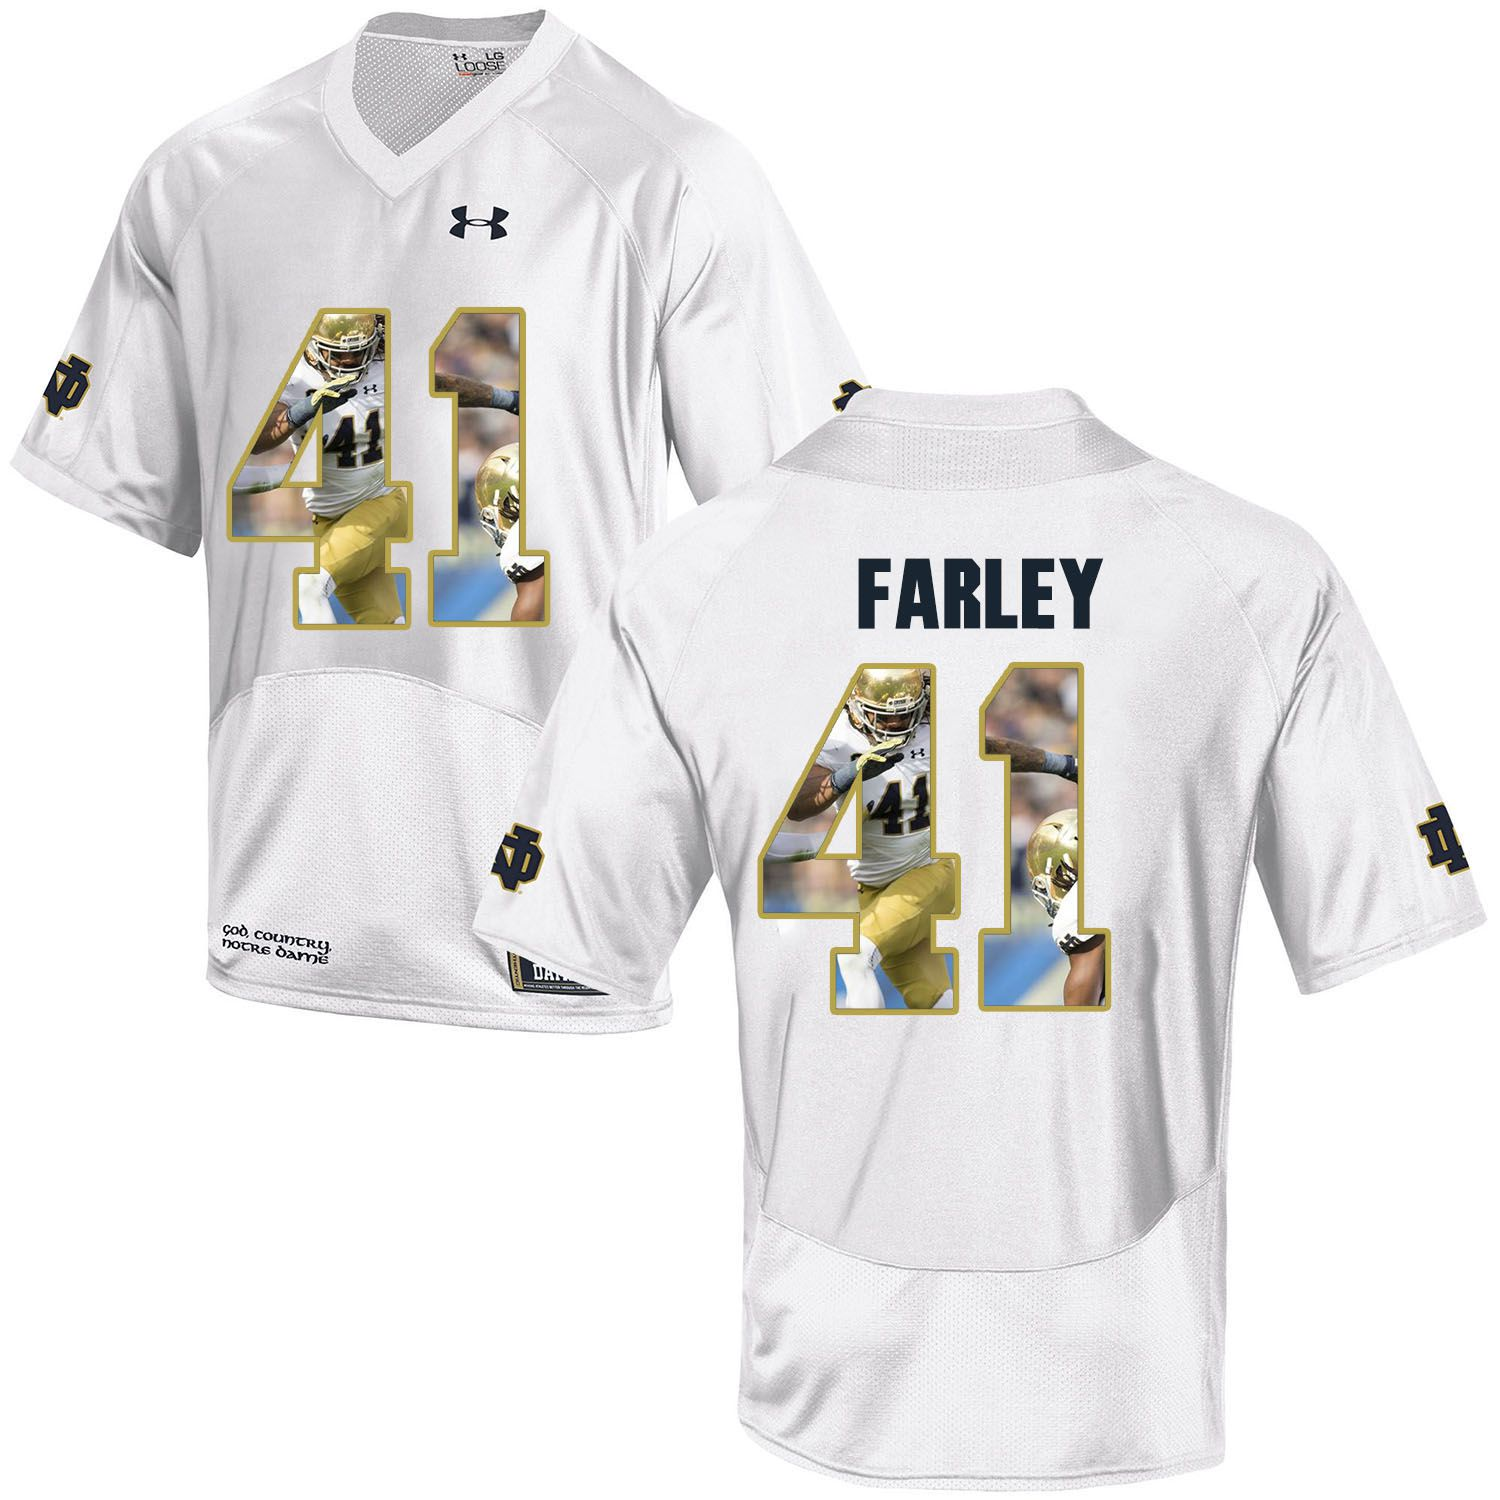 Men Norte Dame Fighting Irish 41 Farley White Fashion Edition Customized NCAA Jerseys